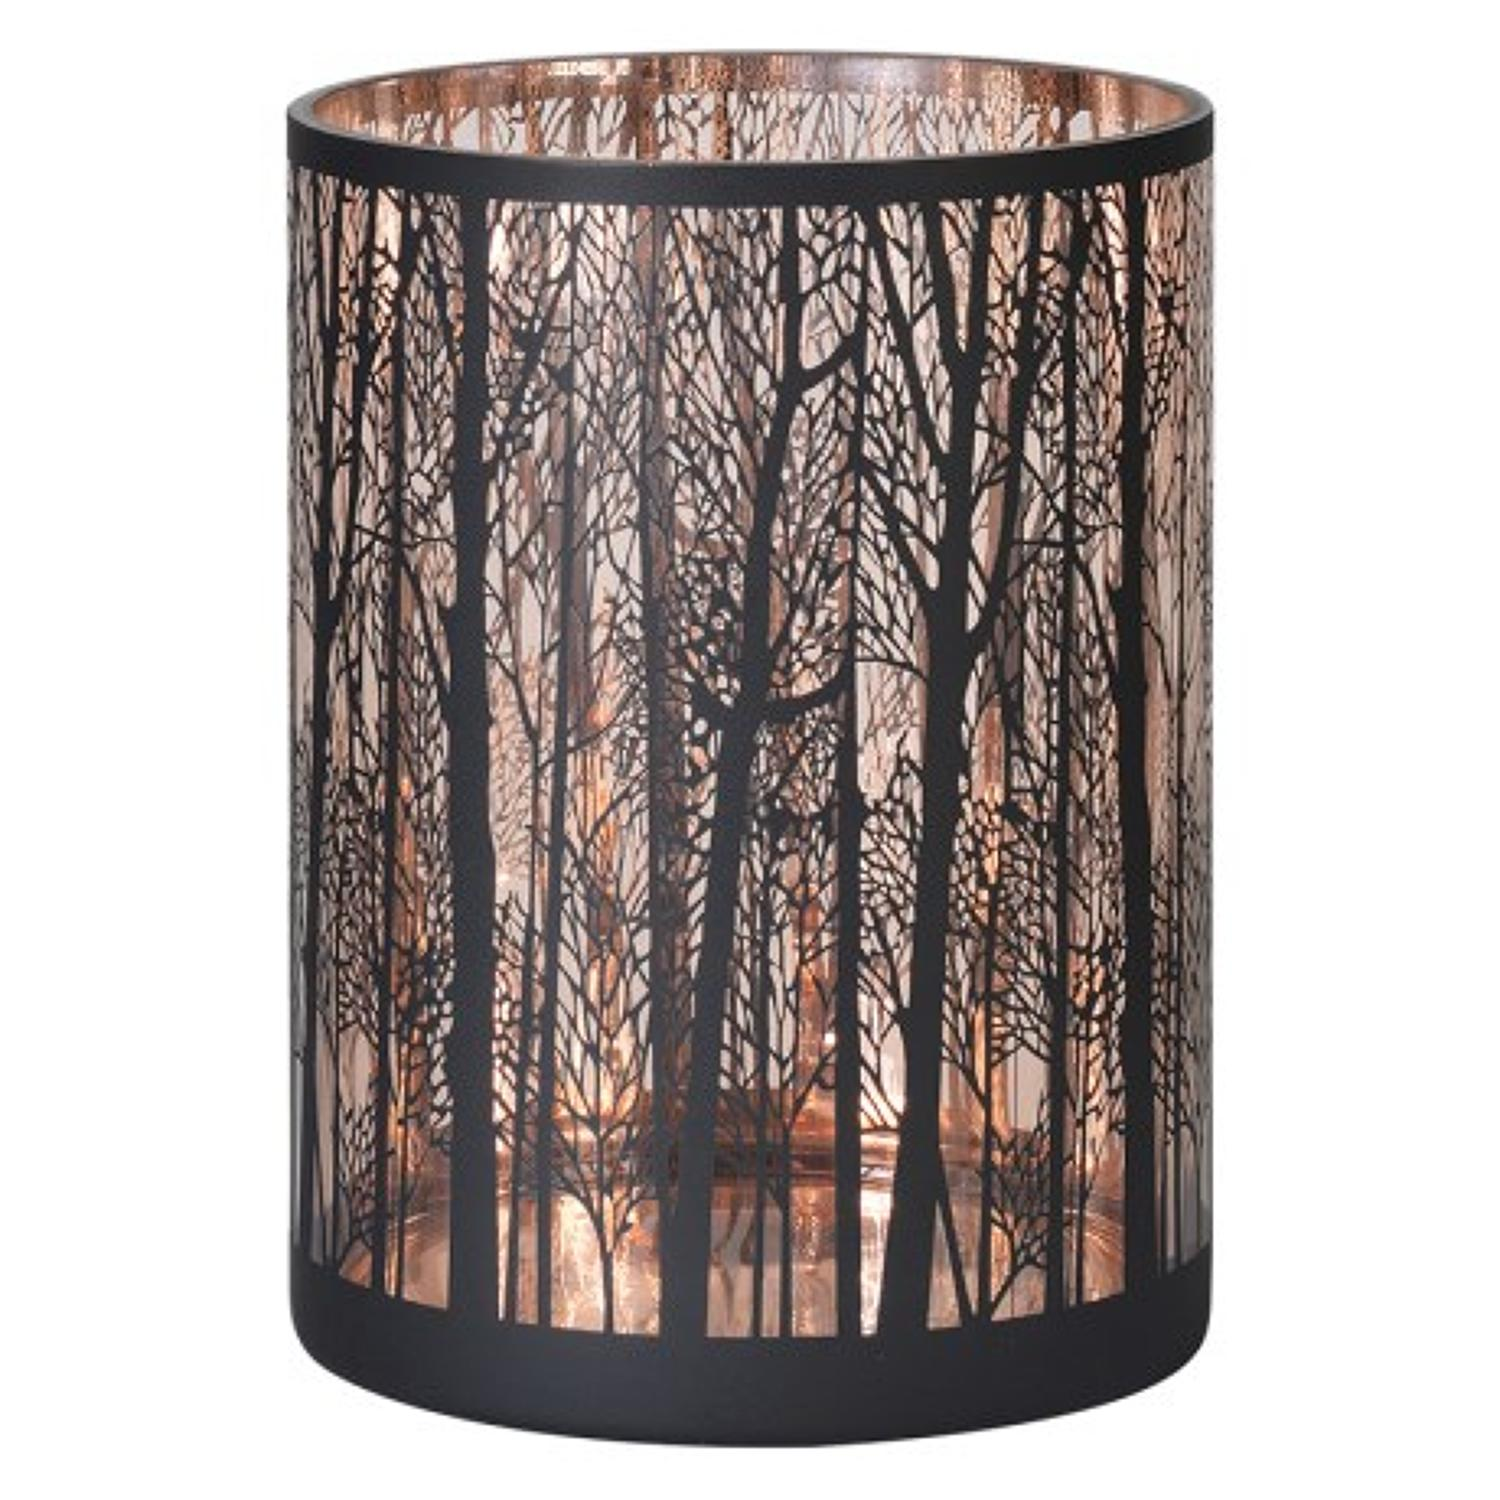 Large copper & black forest candle holder.